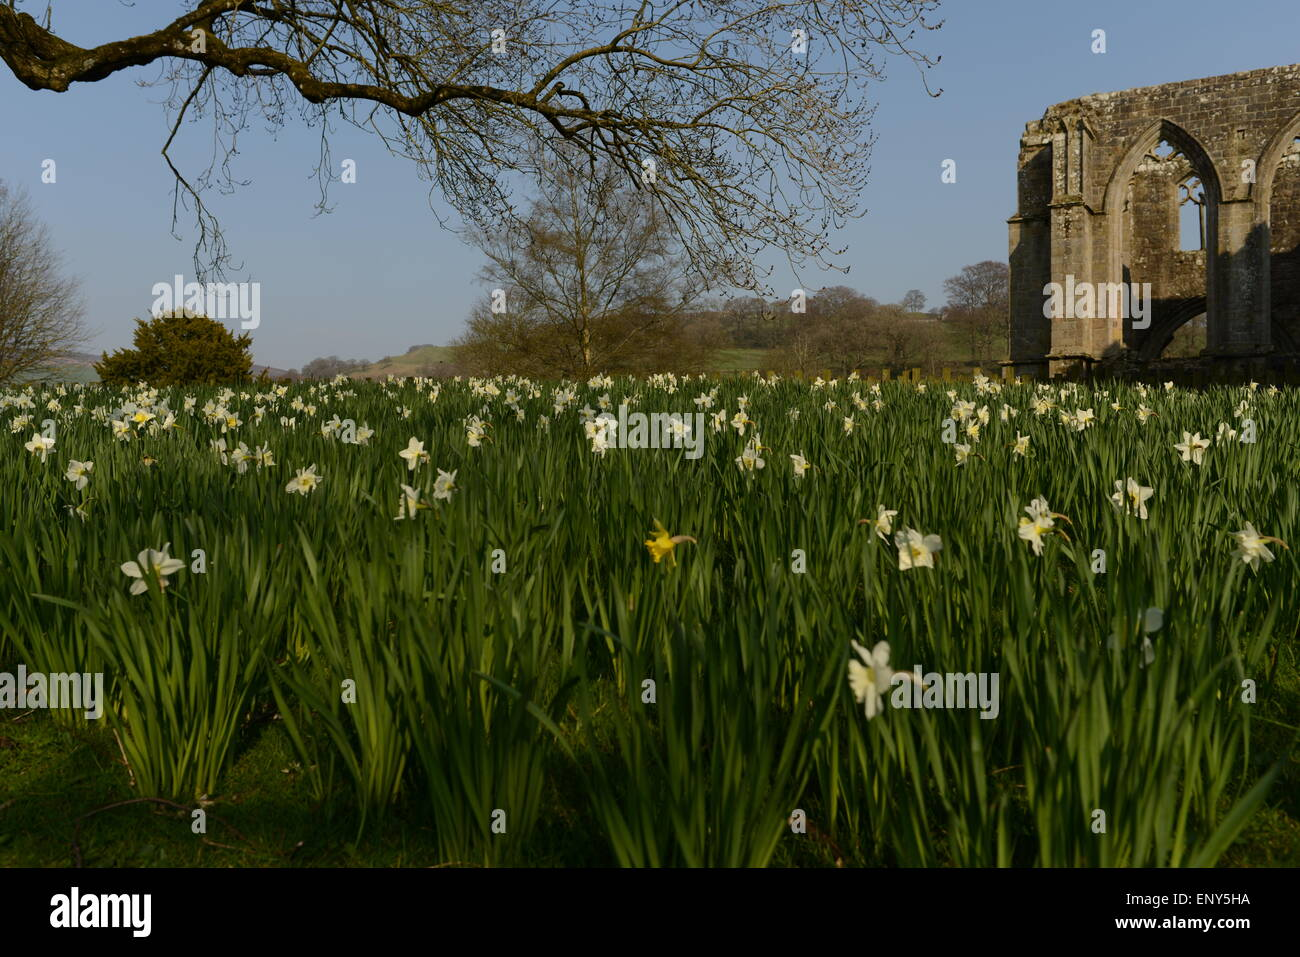 A bank of daffodils at Bolton Abbey Priory with the ruins in the distance - Stock Image